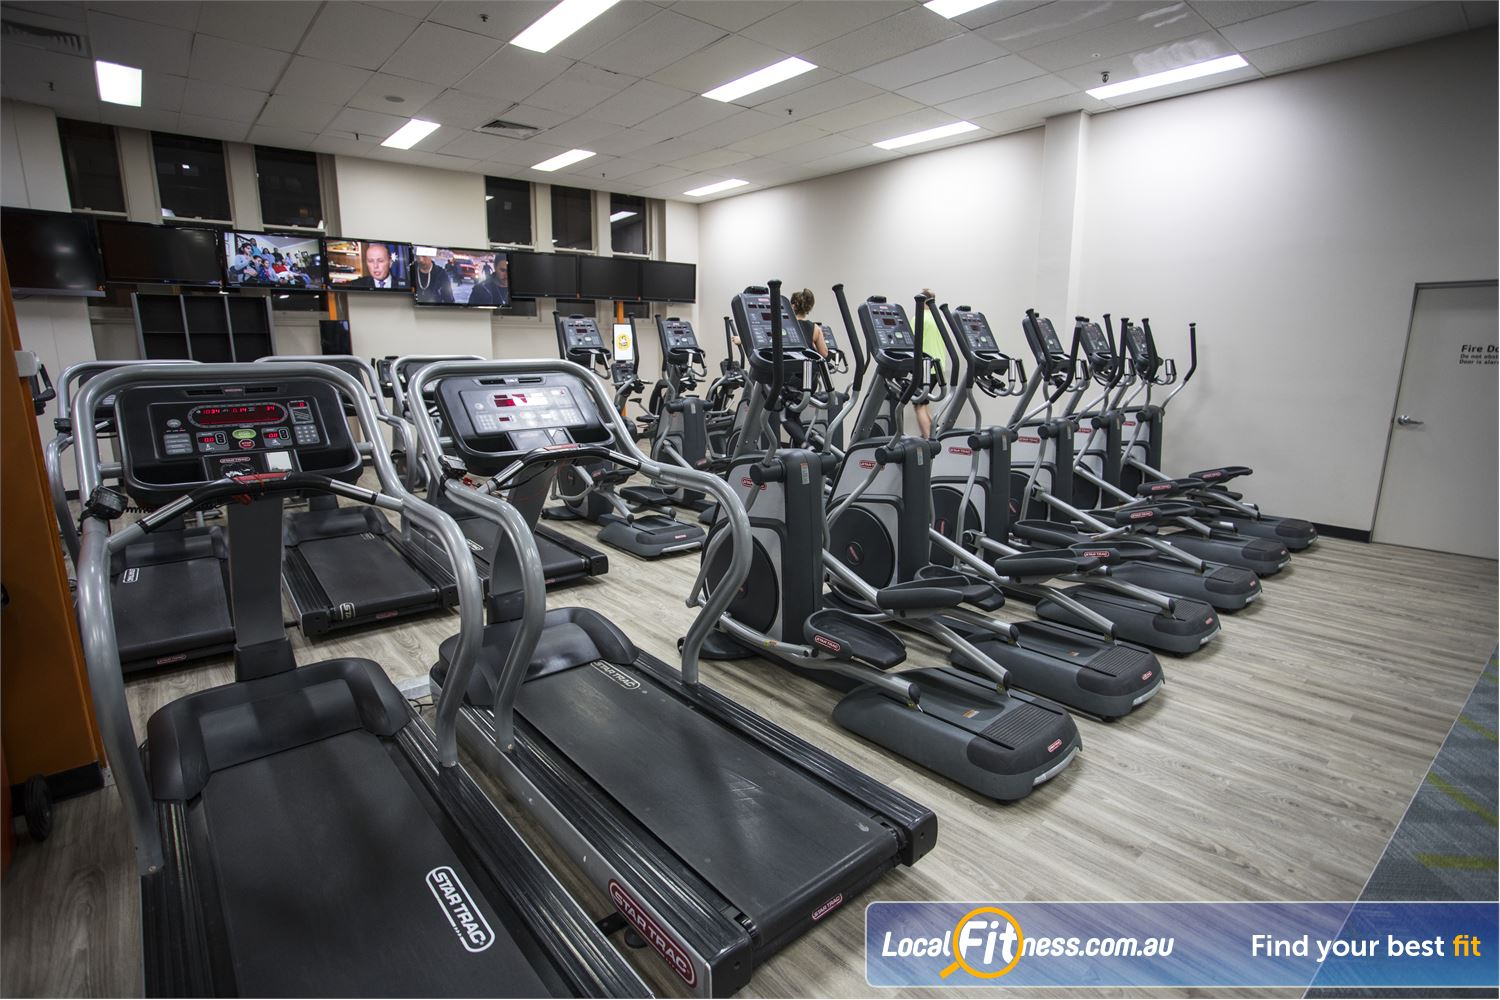 Fit n Fast Sydney Our Sydney gym includes state of the art gym and cardio equipment.